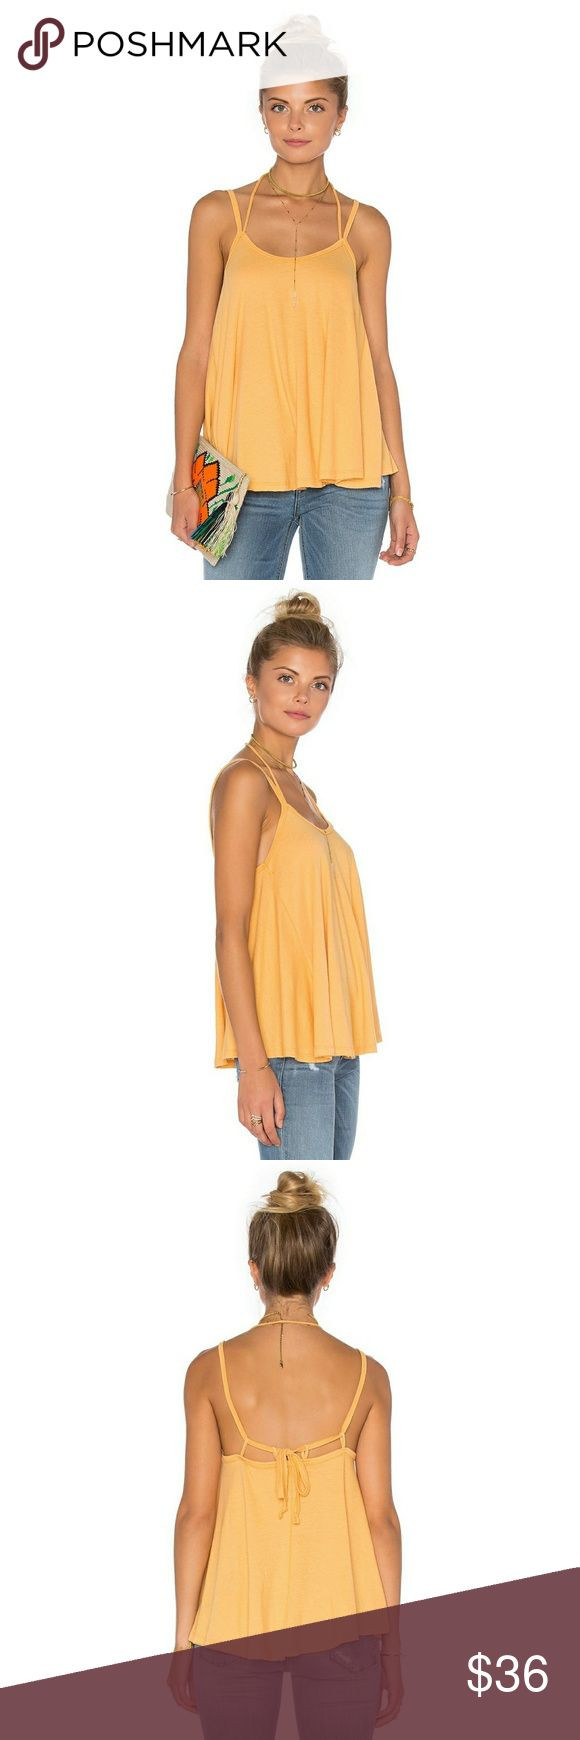 We the Free People Flowing Tank Top w Tie Back We the Free People So in Love Tank  New with tags! Size Medium  This is a wide & flowy A line tank which has straps that tie on the back. Color is mango.  Save 30% on any bundle of two or more items plus FREE Shipping on all bundles! Check out my closet - most of the items I sell are new- great gift ideas! Offers welcome too 💙 Free People Tops Tank Tops